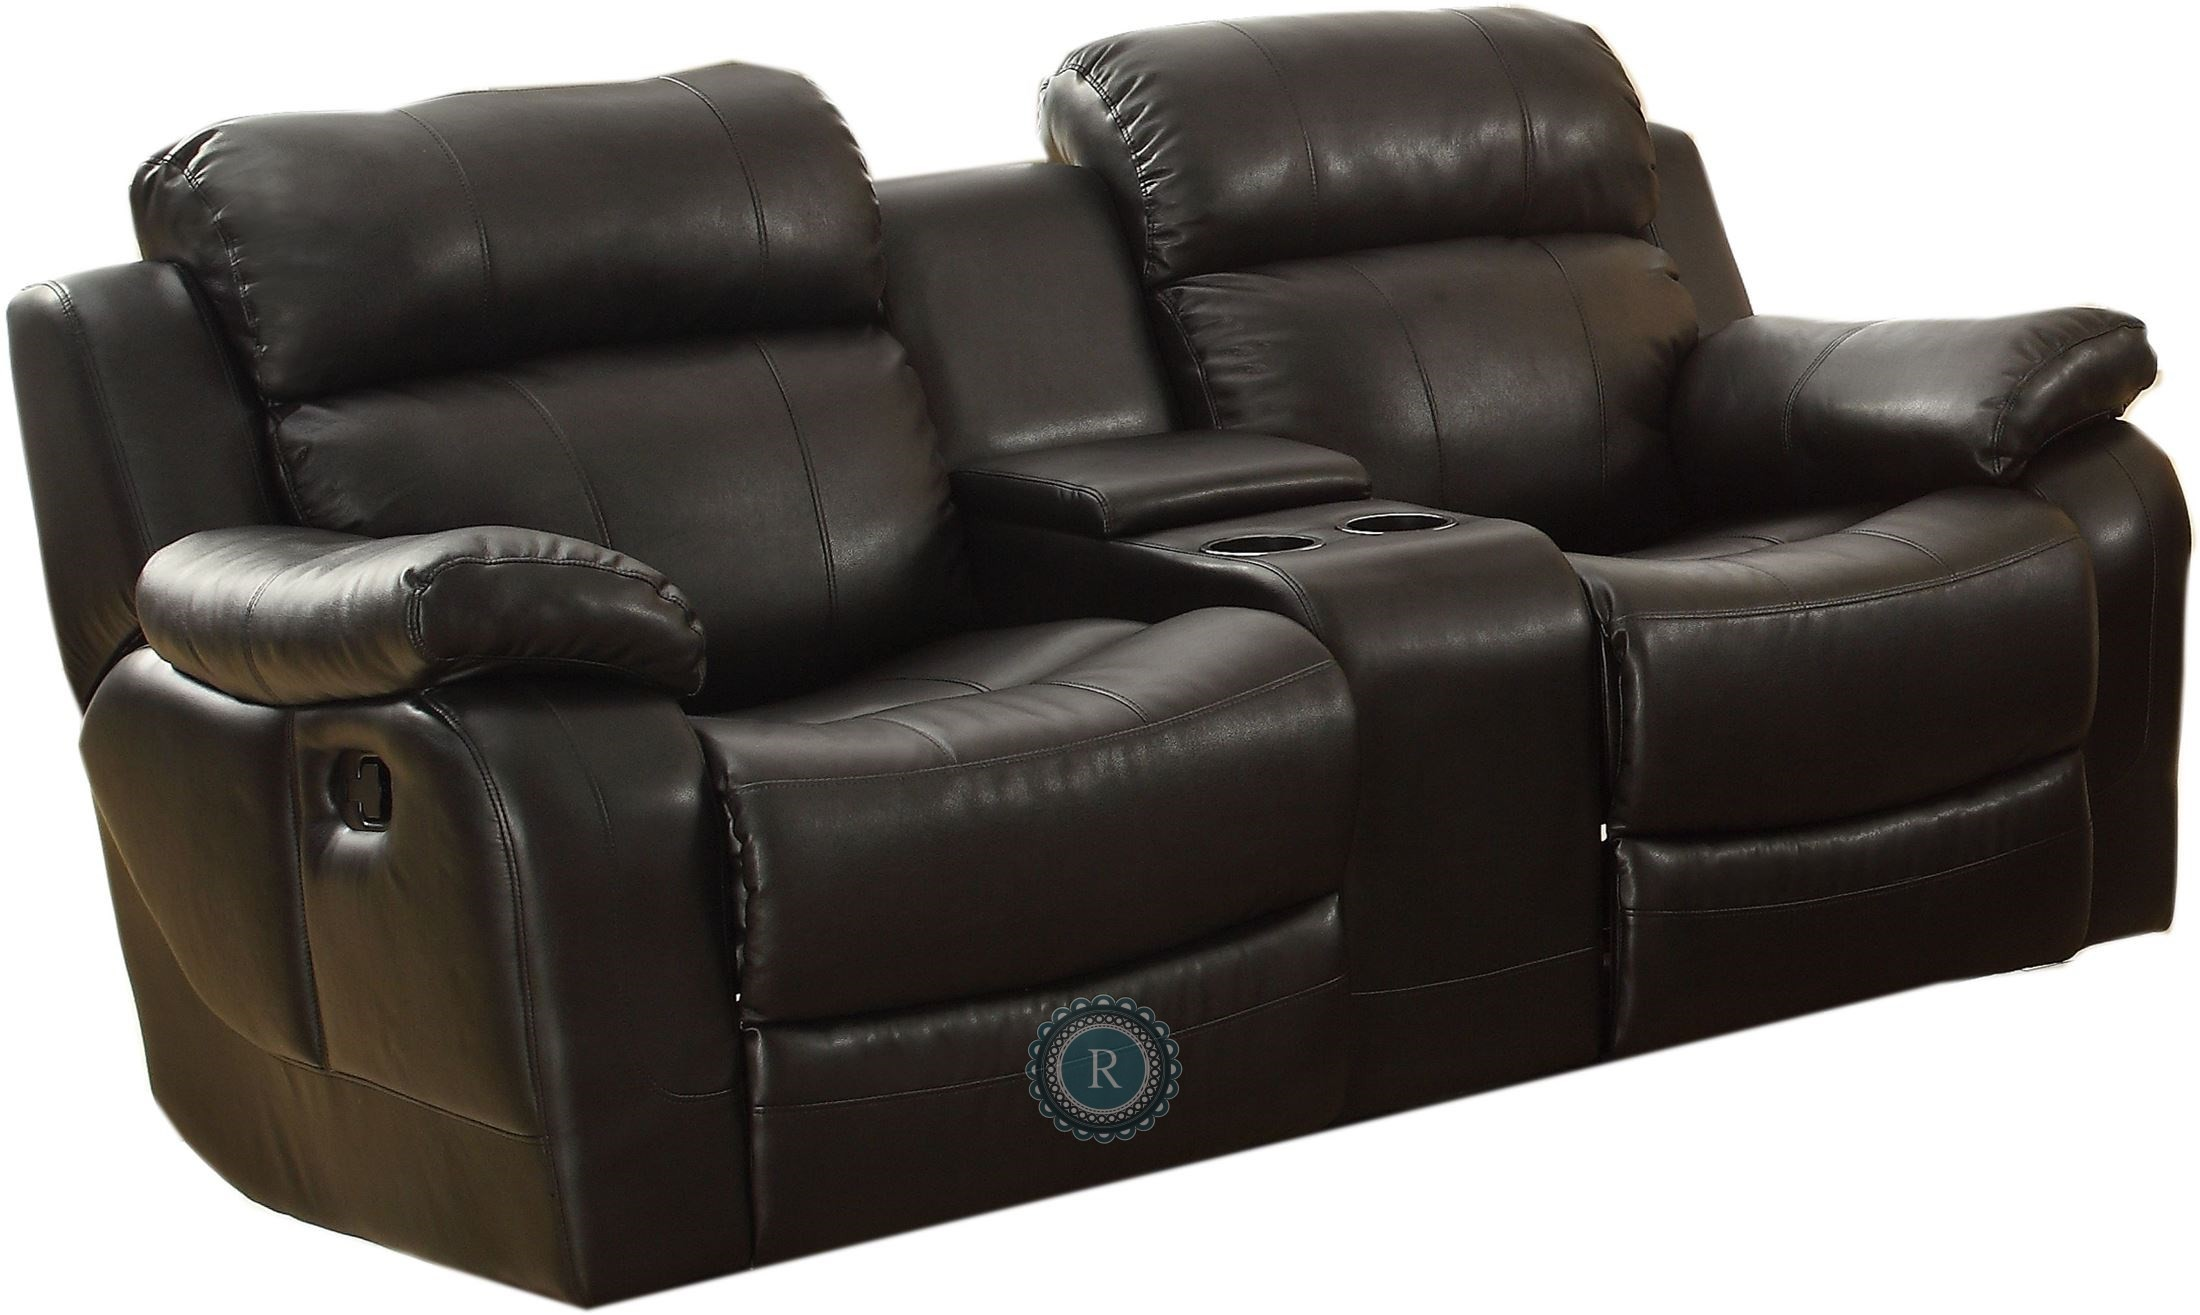 glider sofas make your own sofa arm covers marille black double reclining loveseat with center